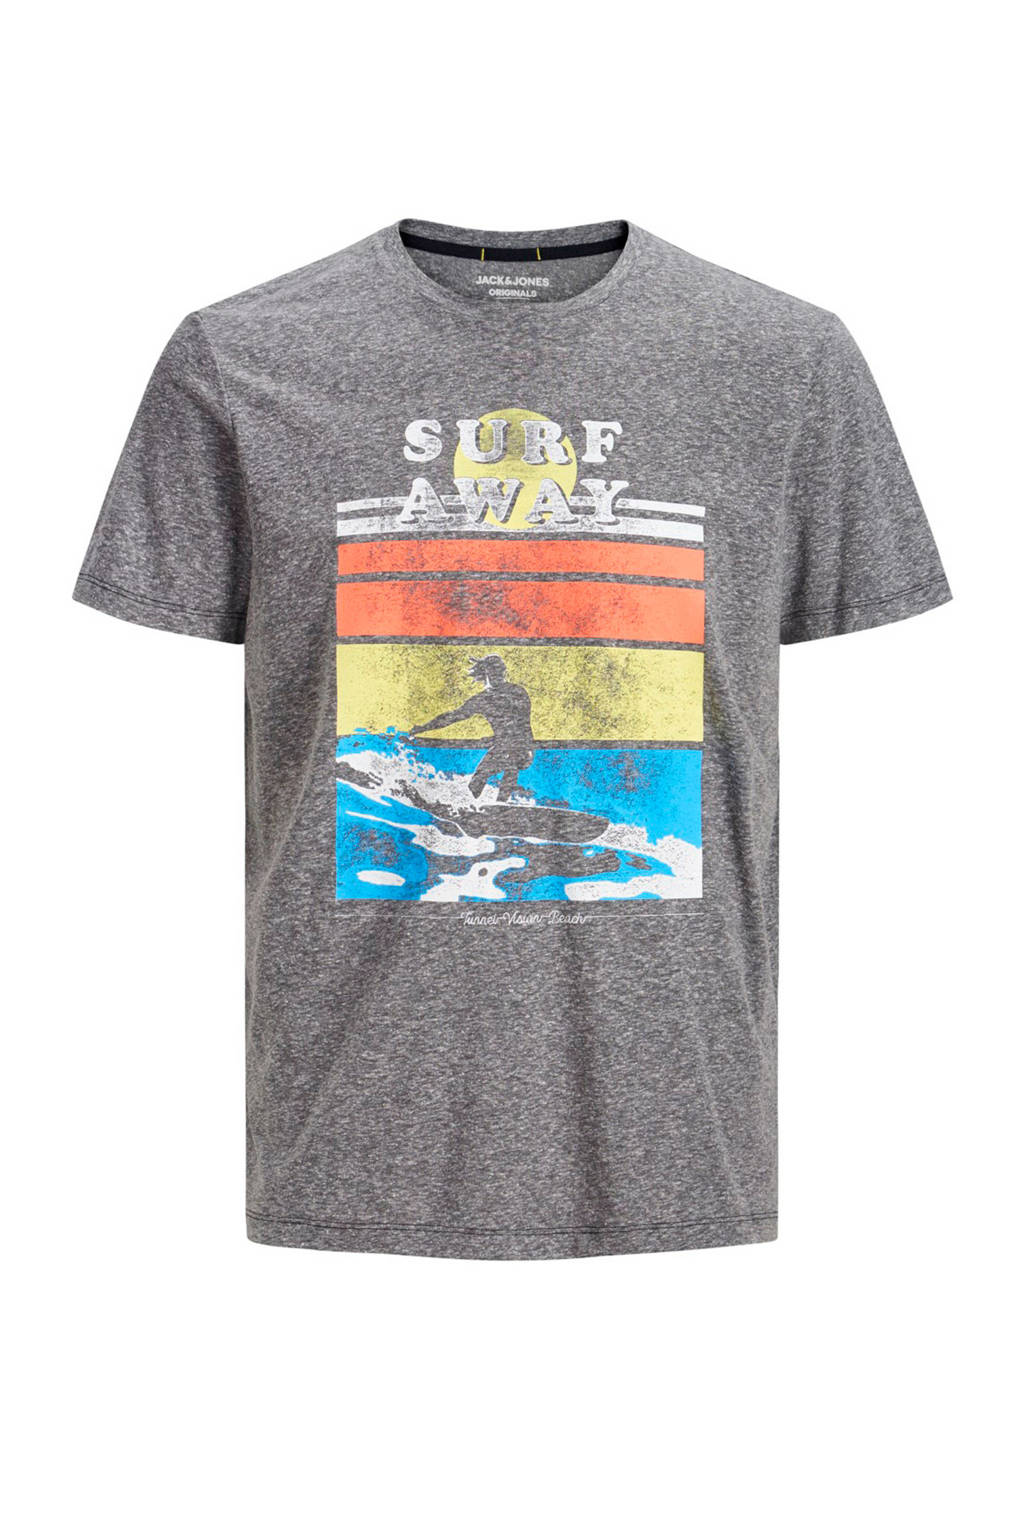 Jack & Jones Junior T-shirt Laguna grijs melange, Grijs melange